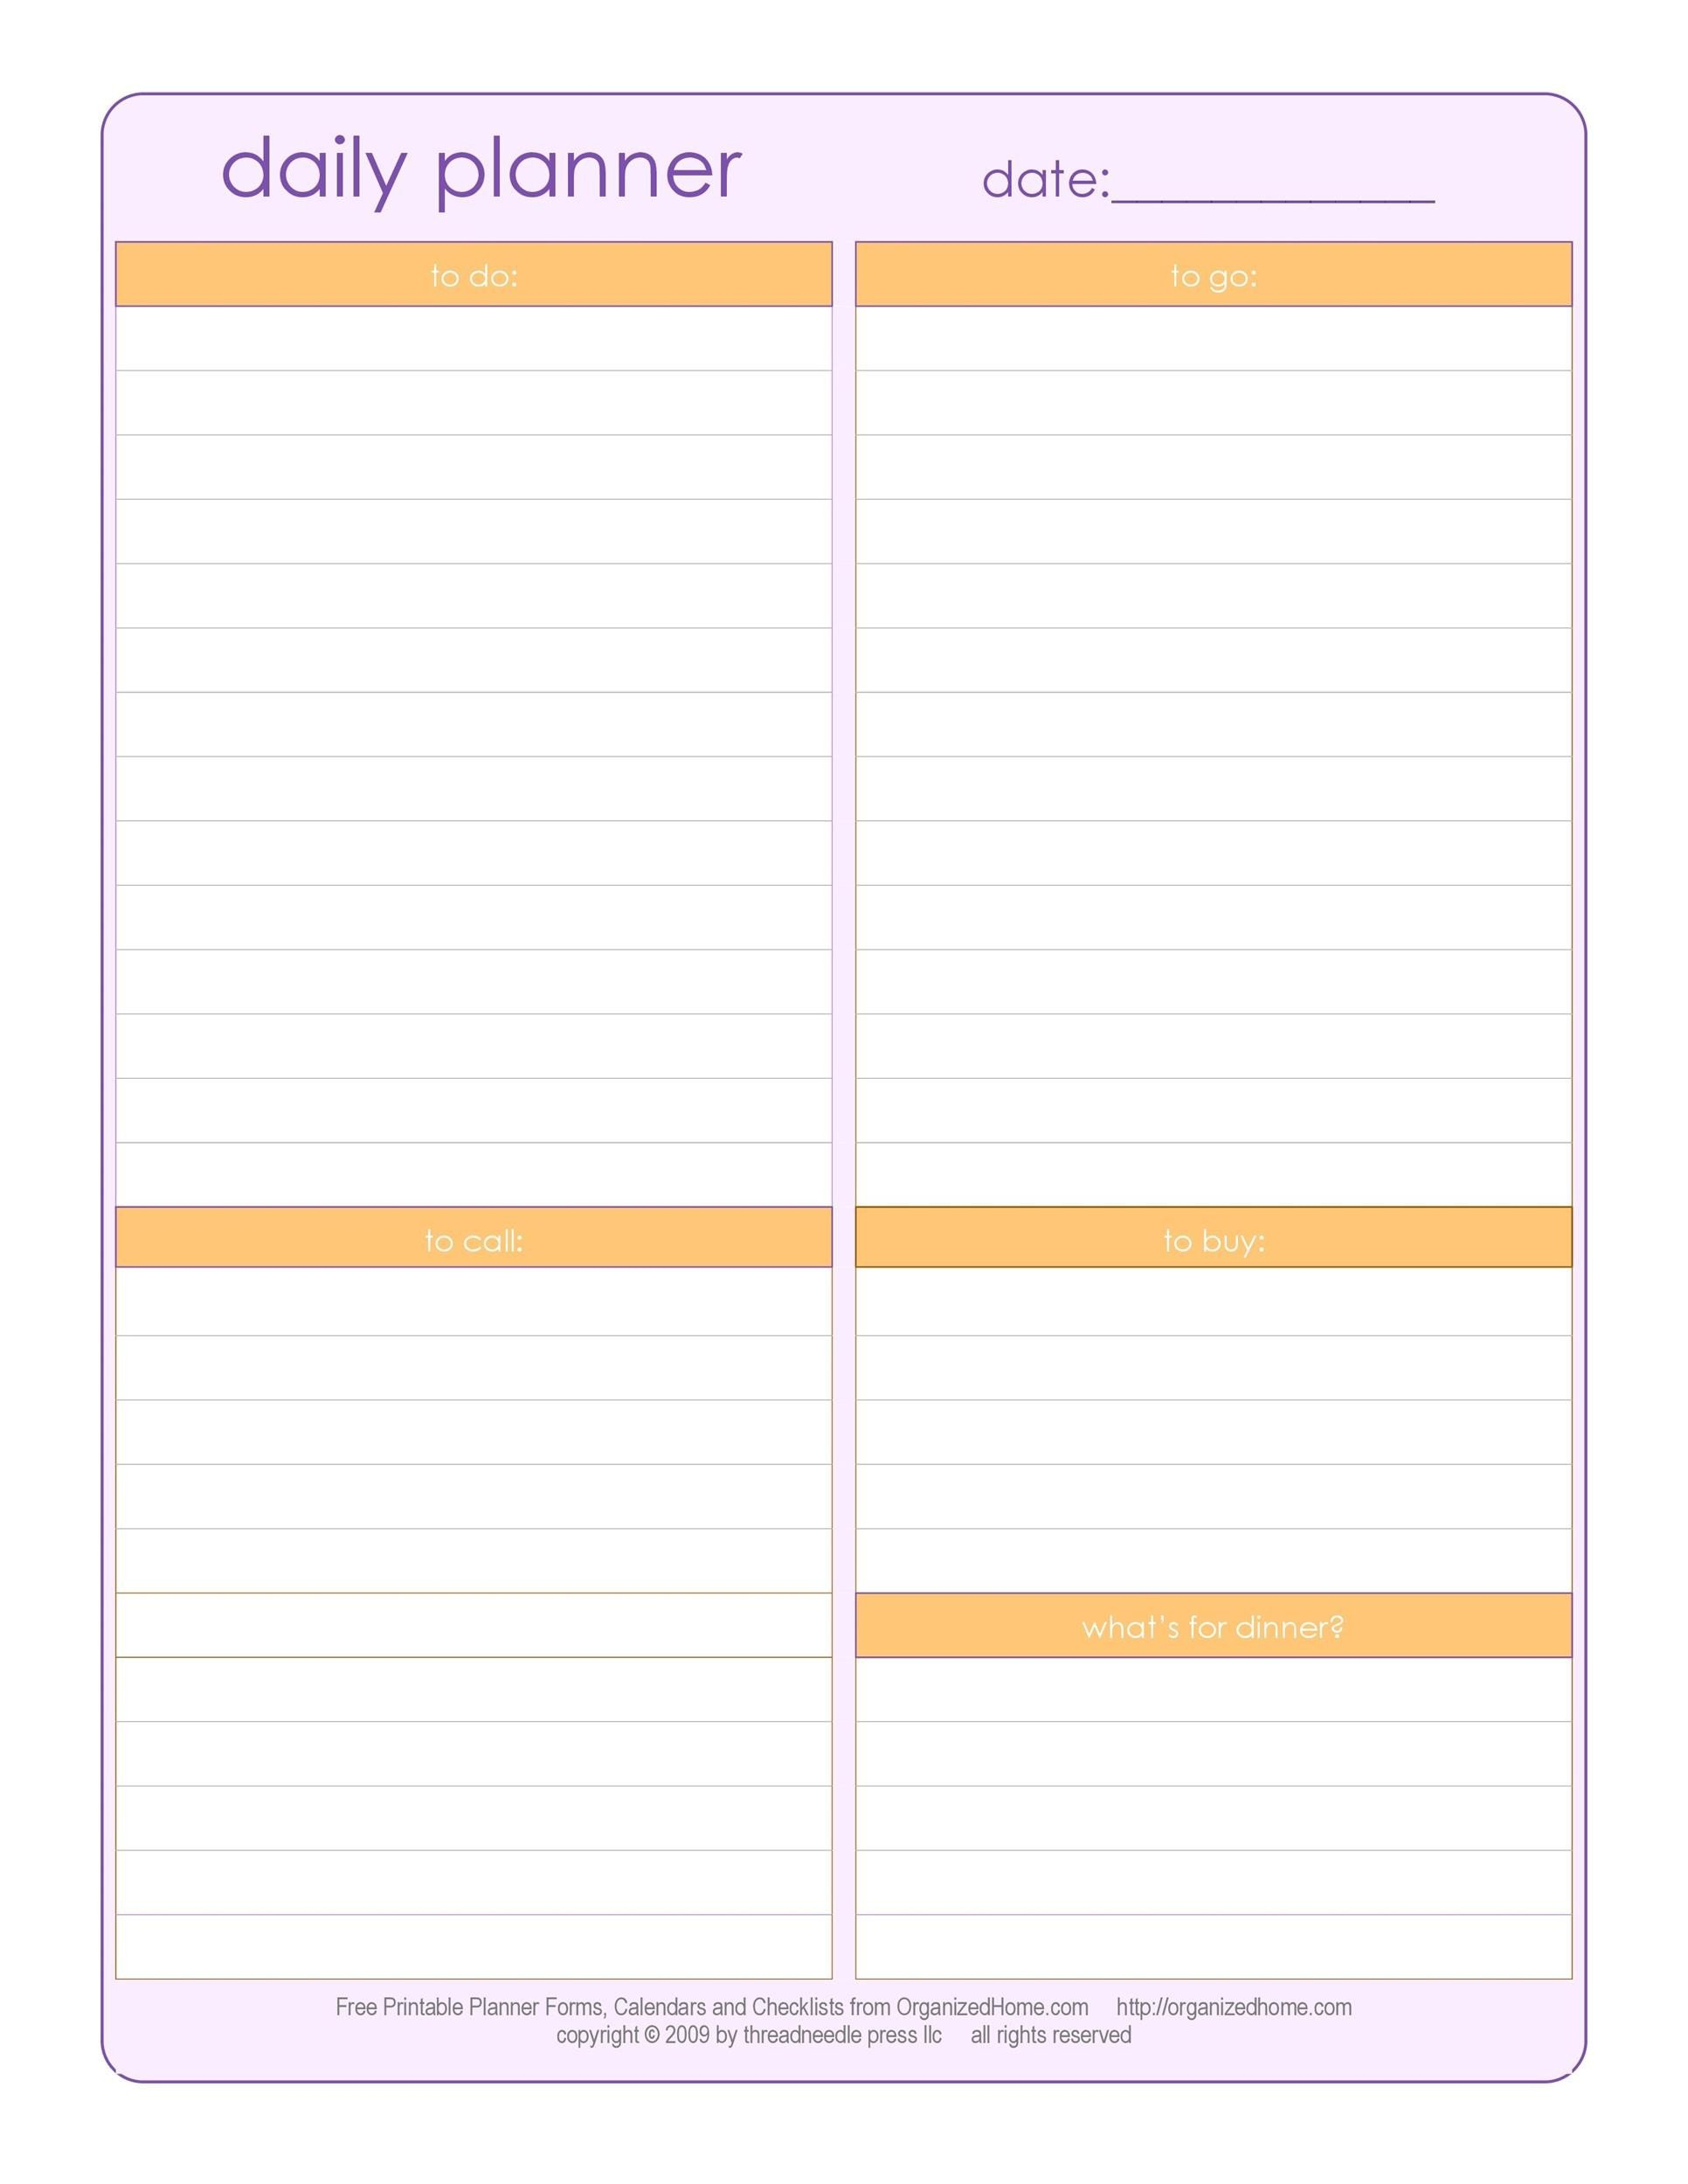 47 Printable Daily Planner Templates (Free In Word/Excel/Pdf) inside Free Weekly Planner Printables Graphics